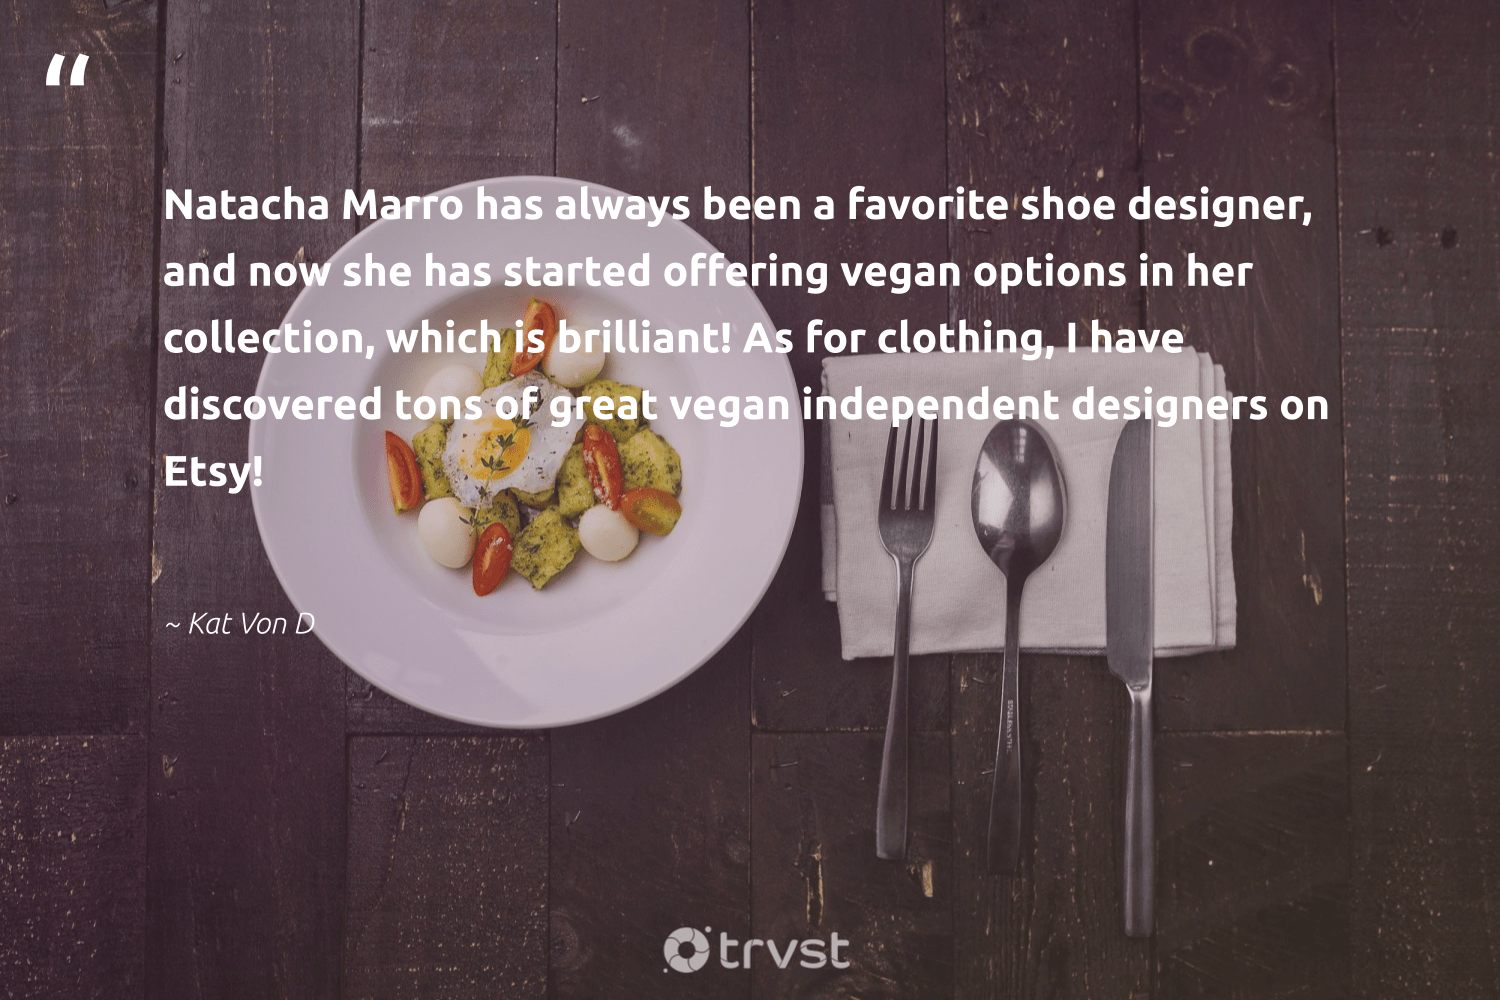 """Natacha Marro has always been a favorite shoe designer, and now she has started offering vegan options in her collection, which is brilliant! As for clothing, I have discovered tons of great vegan independent designers on Etsy!""  - Kat Von D #trvst #quotes #vegan #veganfoodshare #sustainable #green #thinkgreen #veganlife #bethechange #sustainability #gogreen #veganfood"